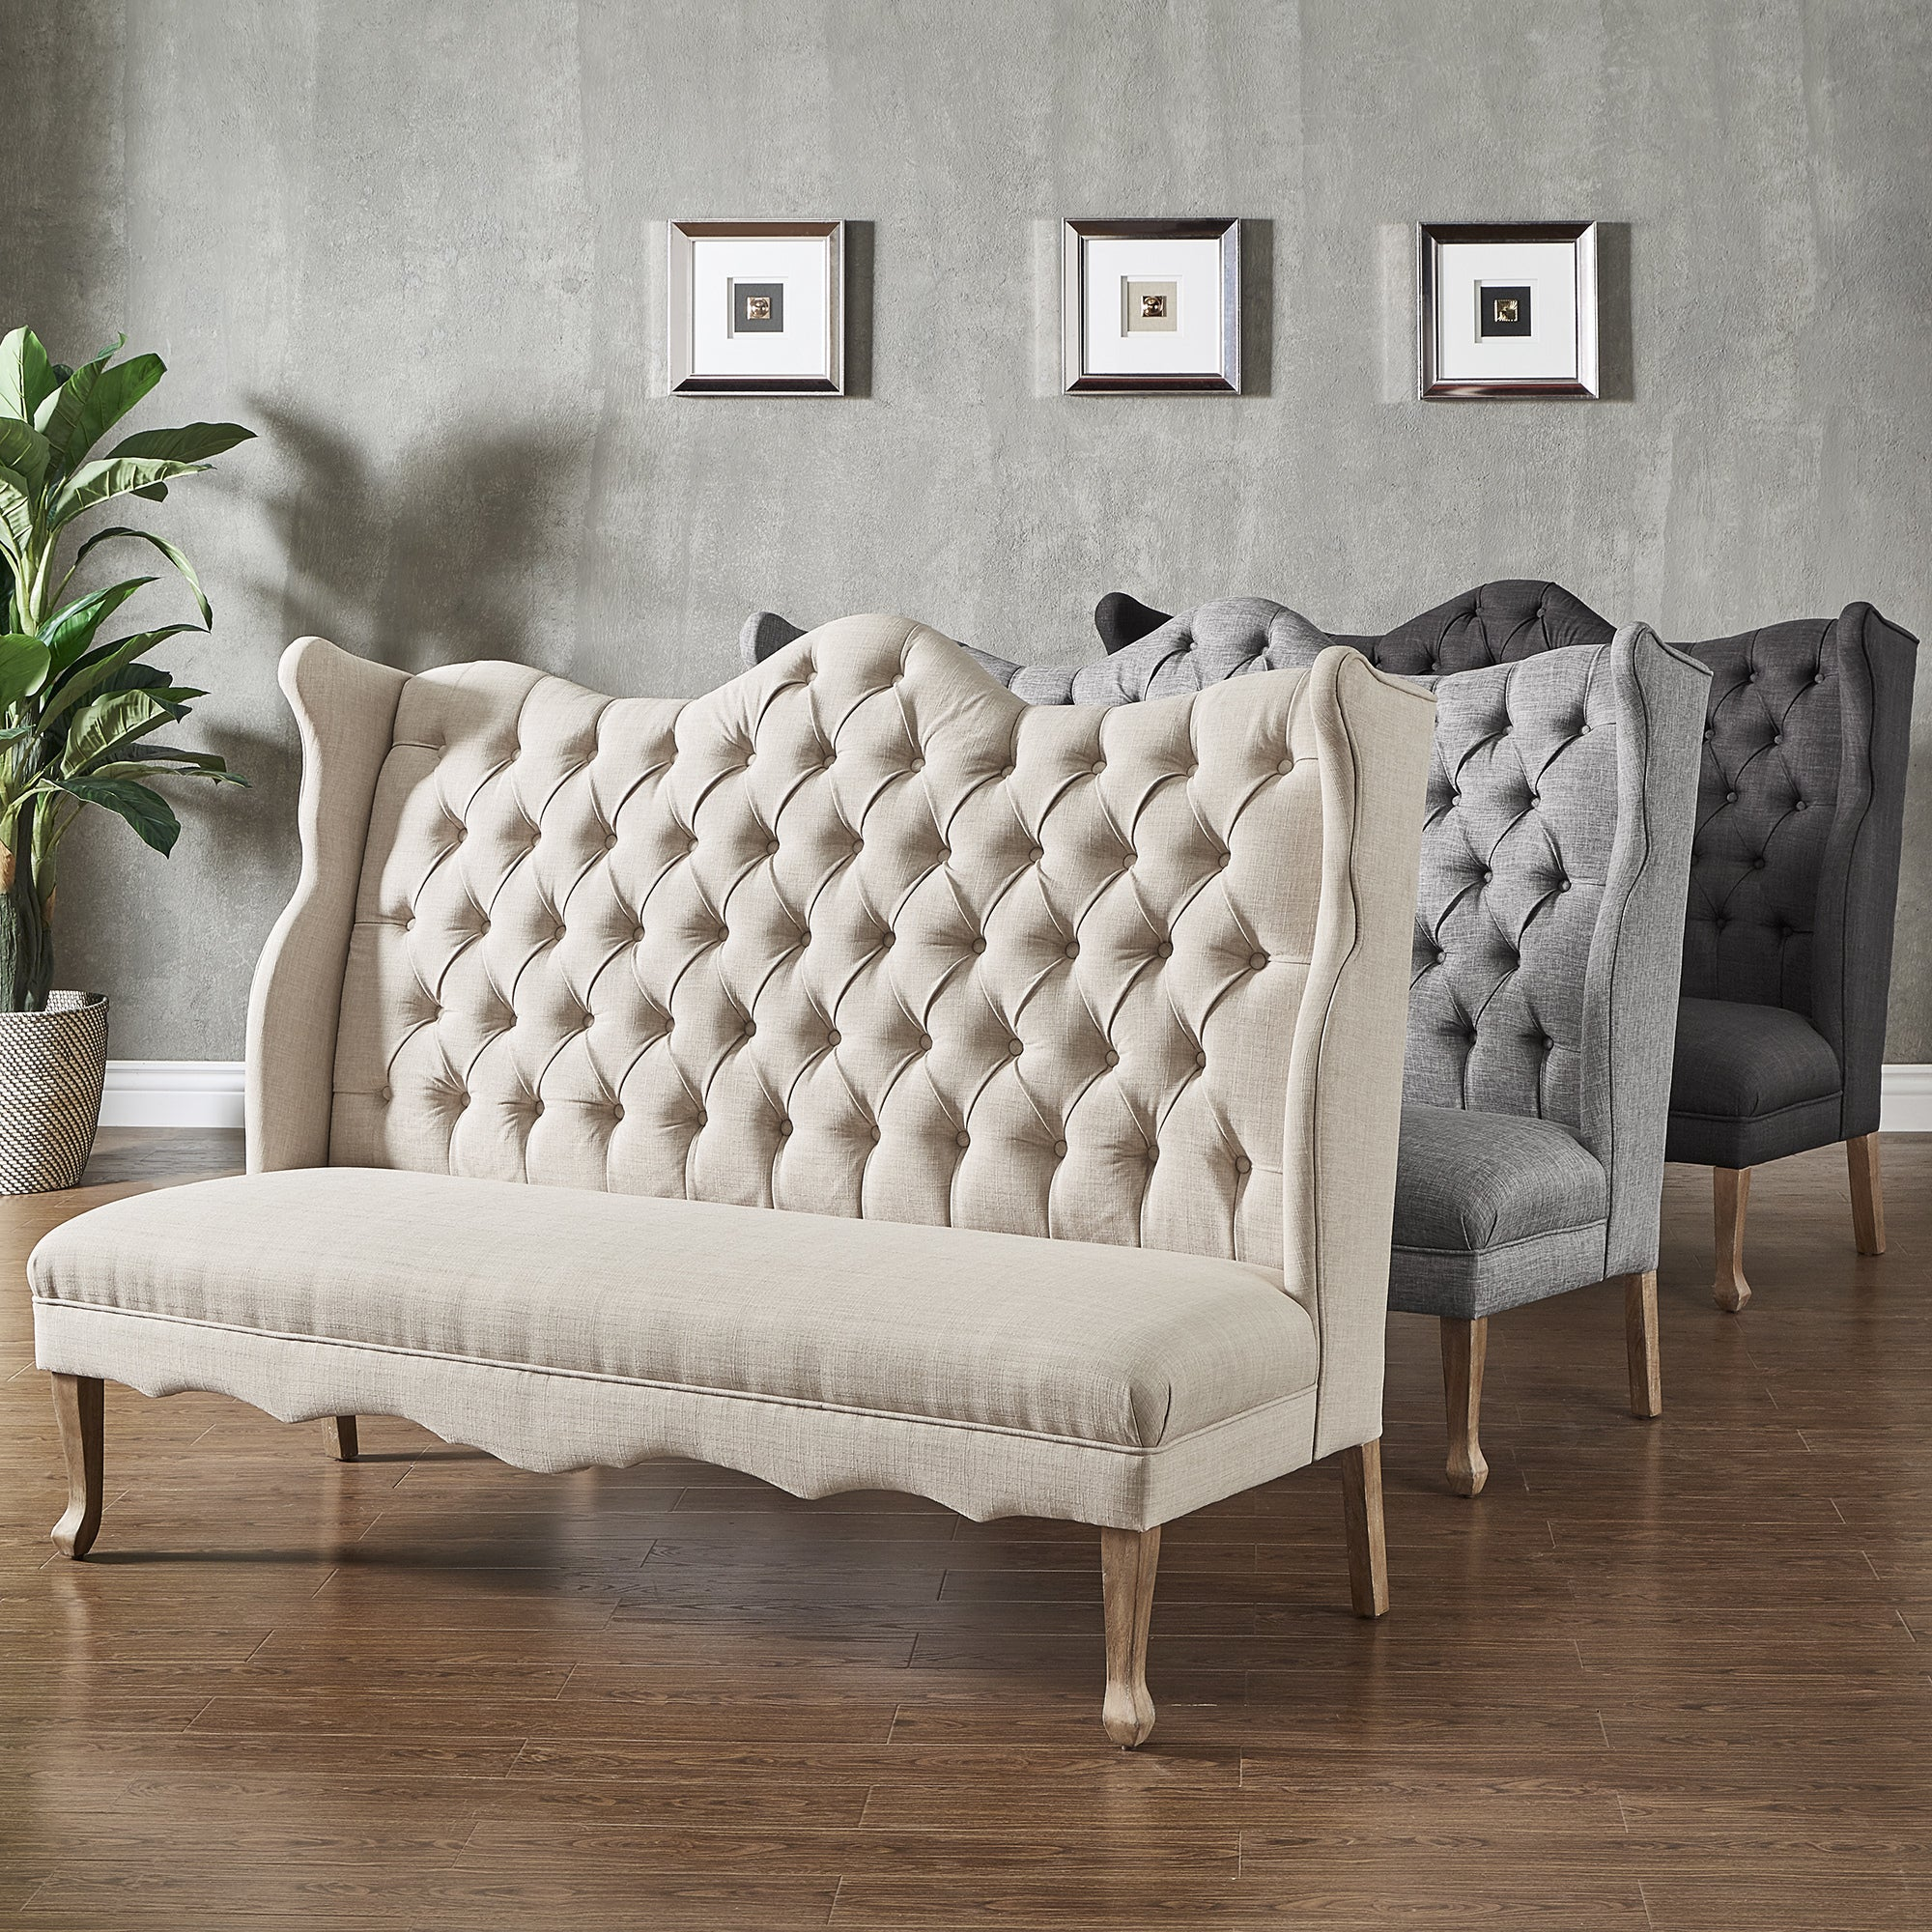 Sawyer-Curved-Back-Tufted-Linen-Upholstered-Bench-by-